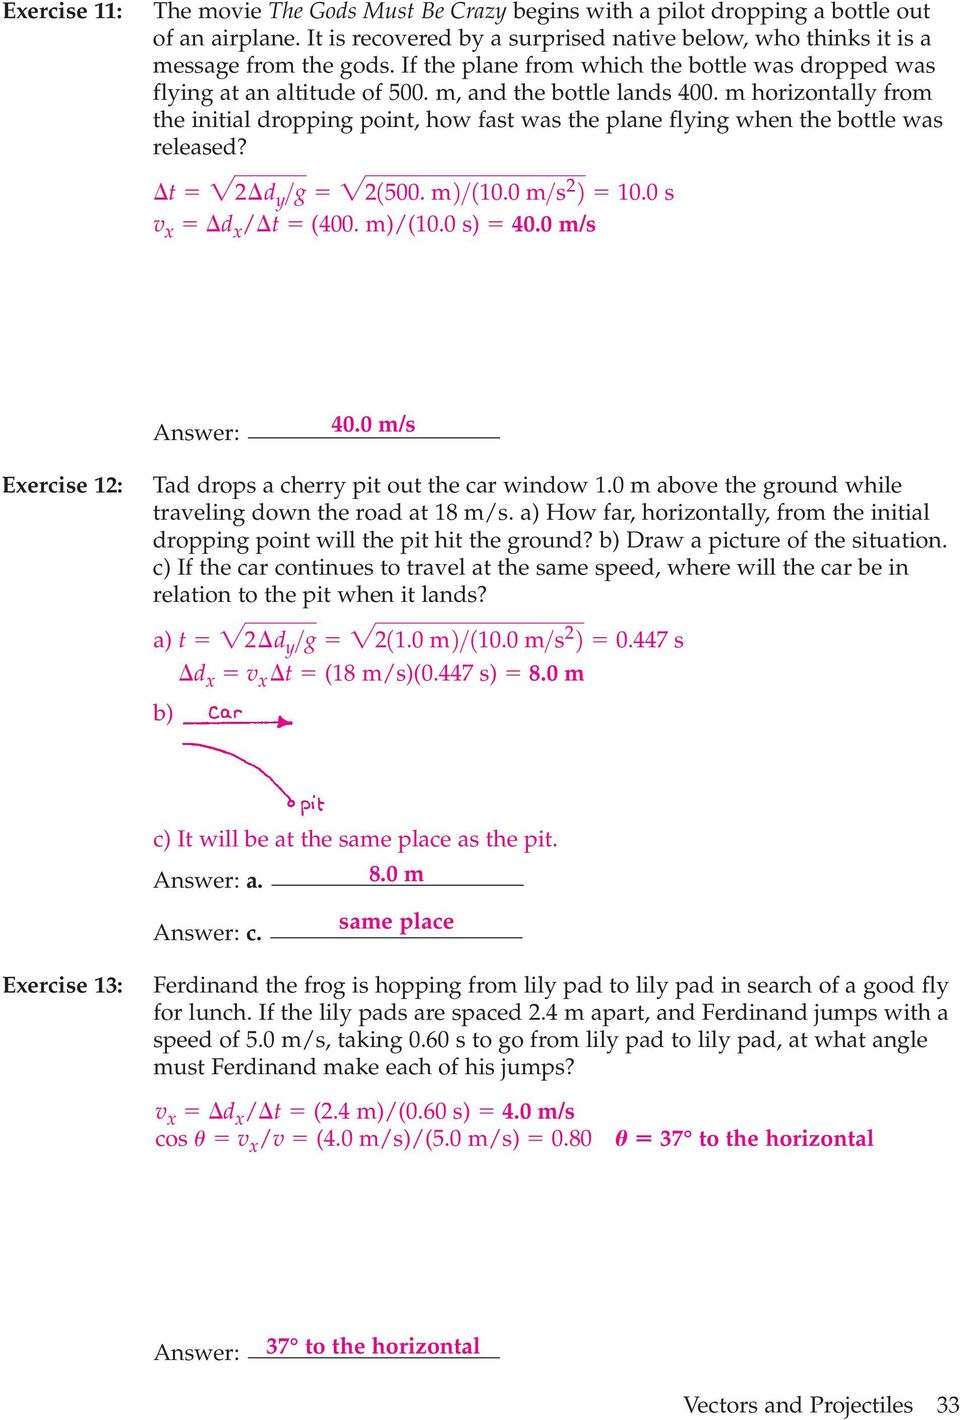 worksheet Vectors And Projectiles Worksheet 3 2 projectile motion pdf m horizontally from the initial dropping point how fast was plane flying when the